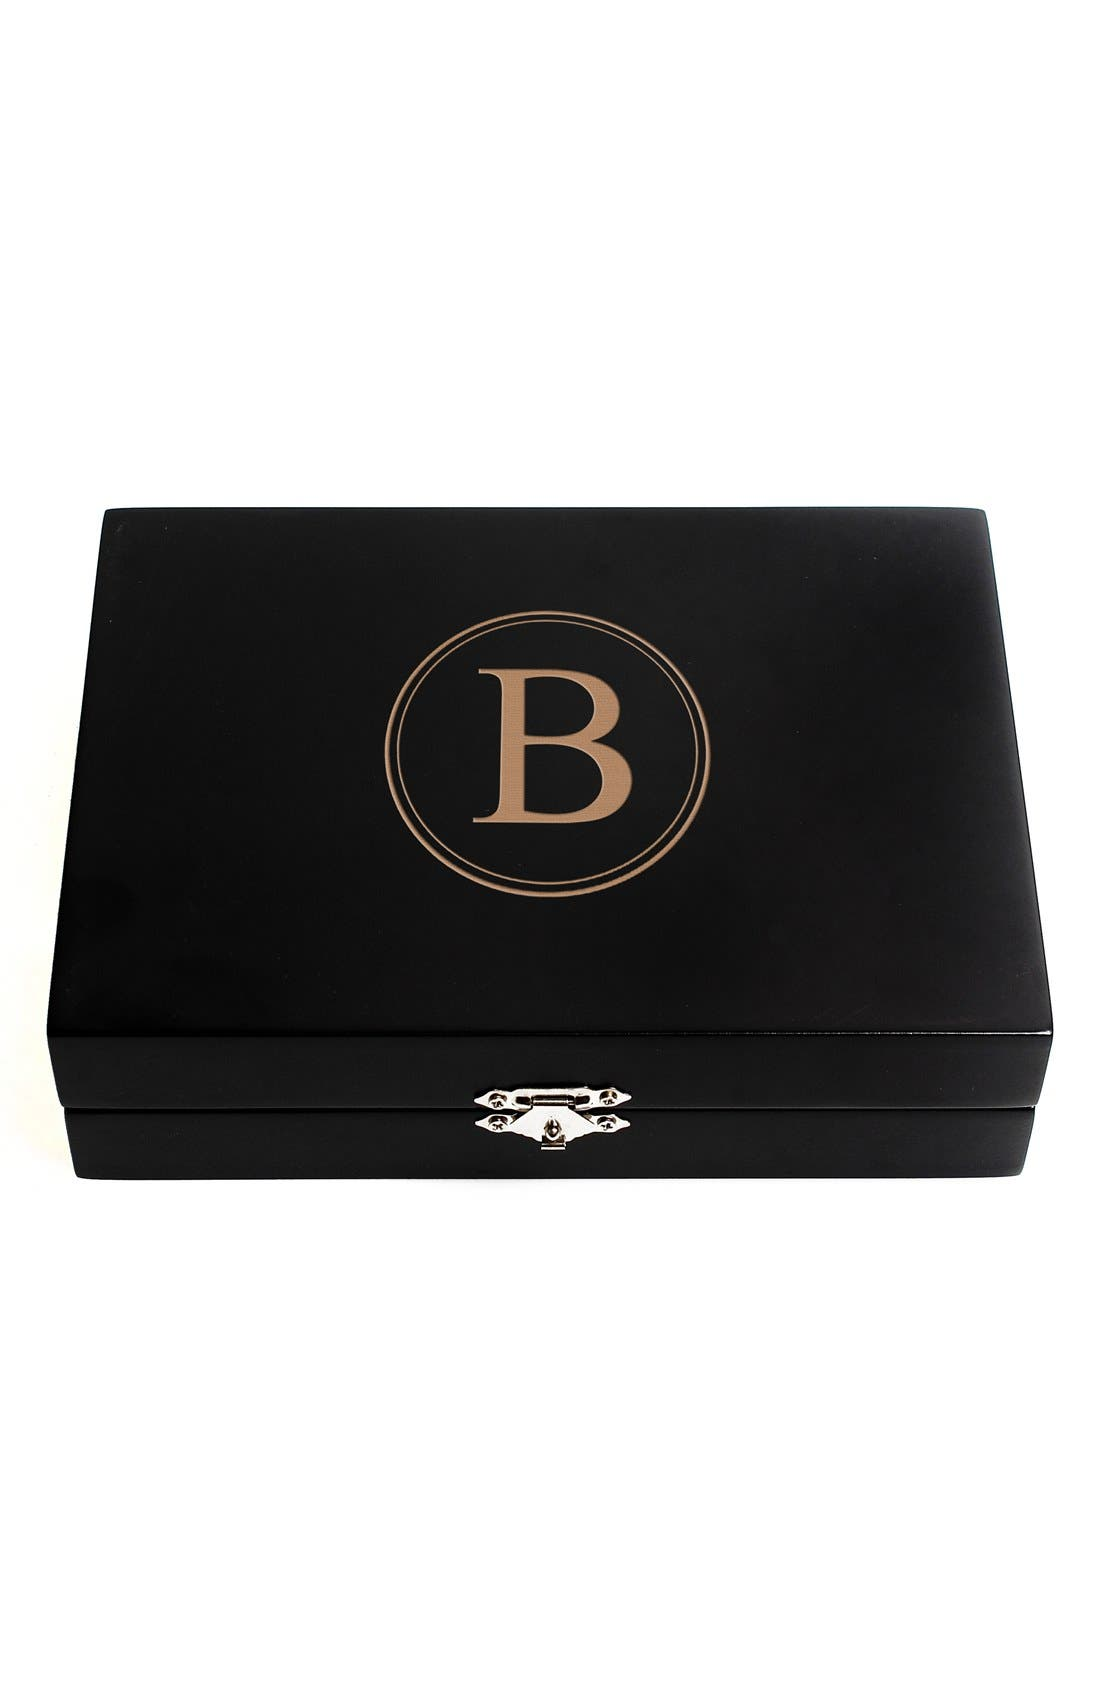 Monogram Wooden Jewelry Box,                             Main thumbnail 4, color,